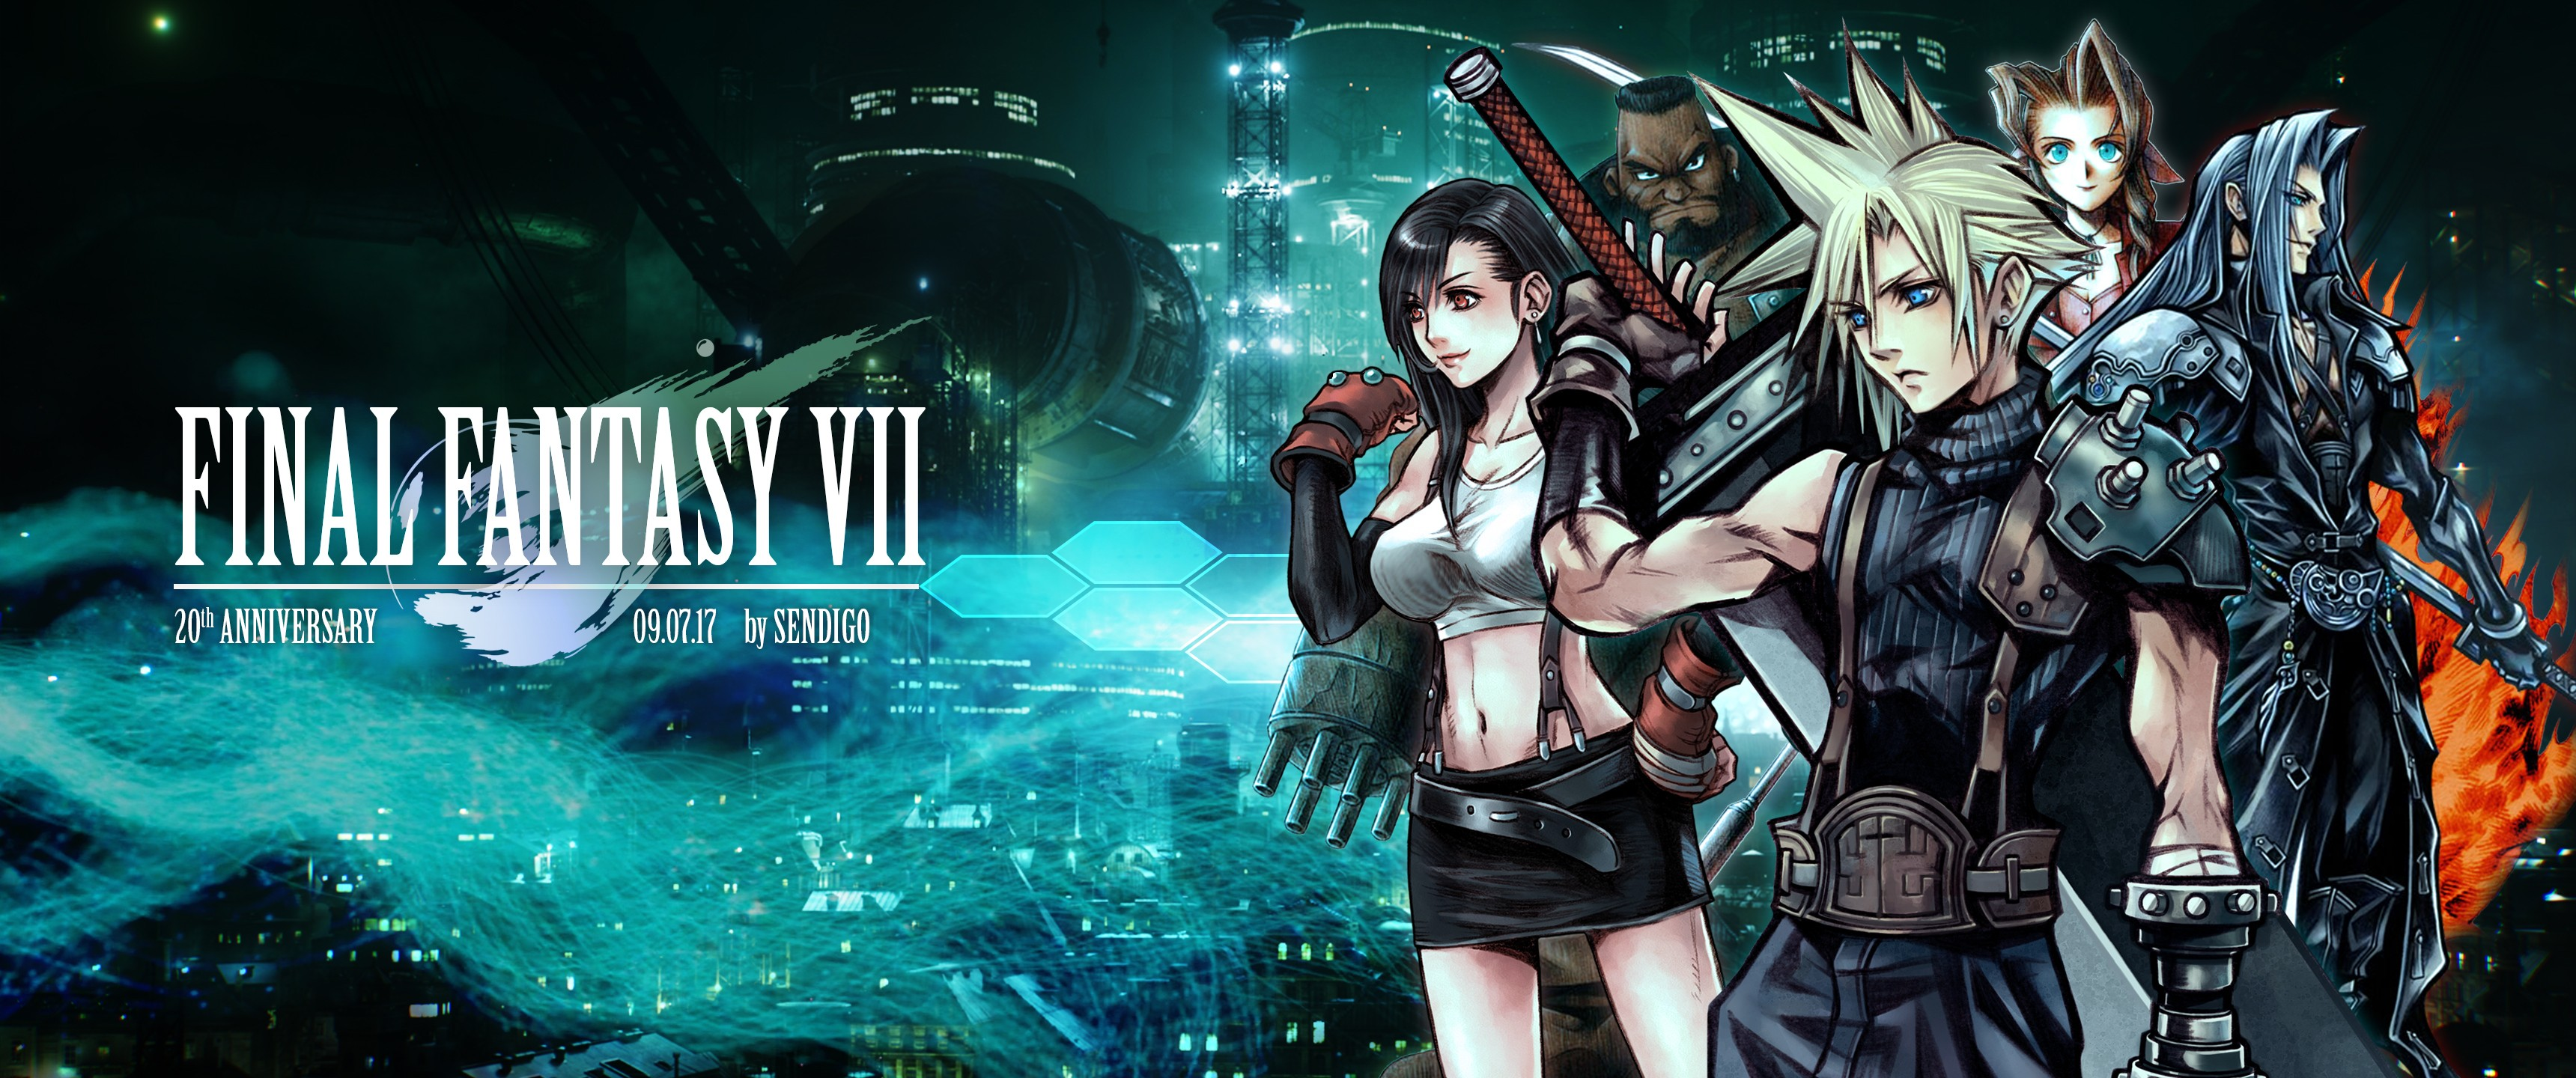 3440x1440 Large Final Fantasy 7 Wallpaper Download